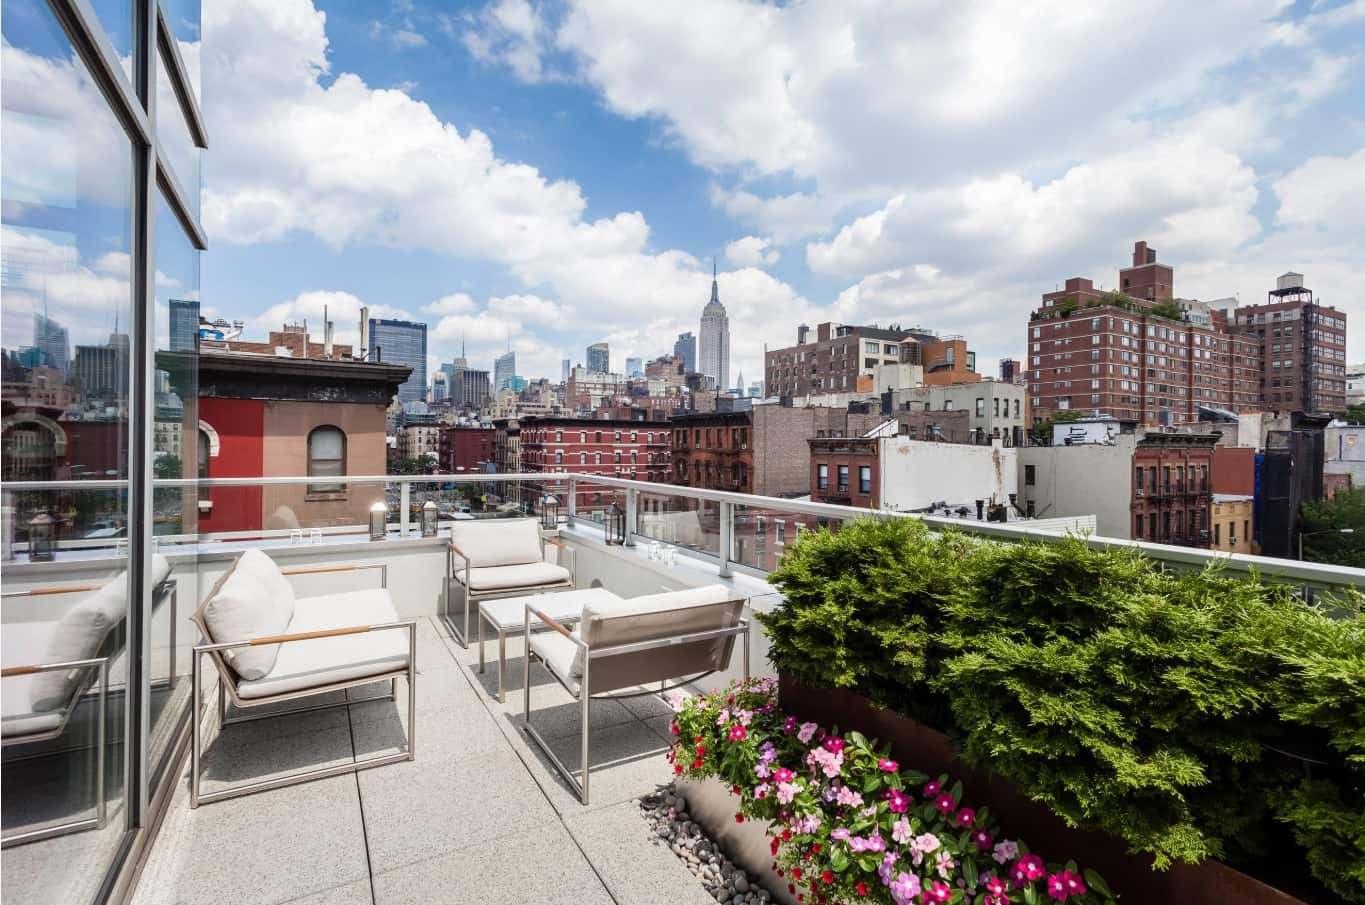 Top 10 Small Apartment Patio Ideas with Photos. Open air space at the penthouse